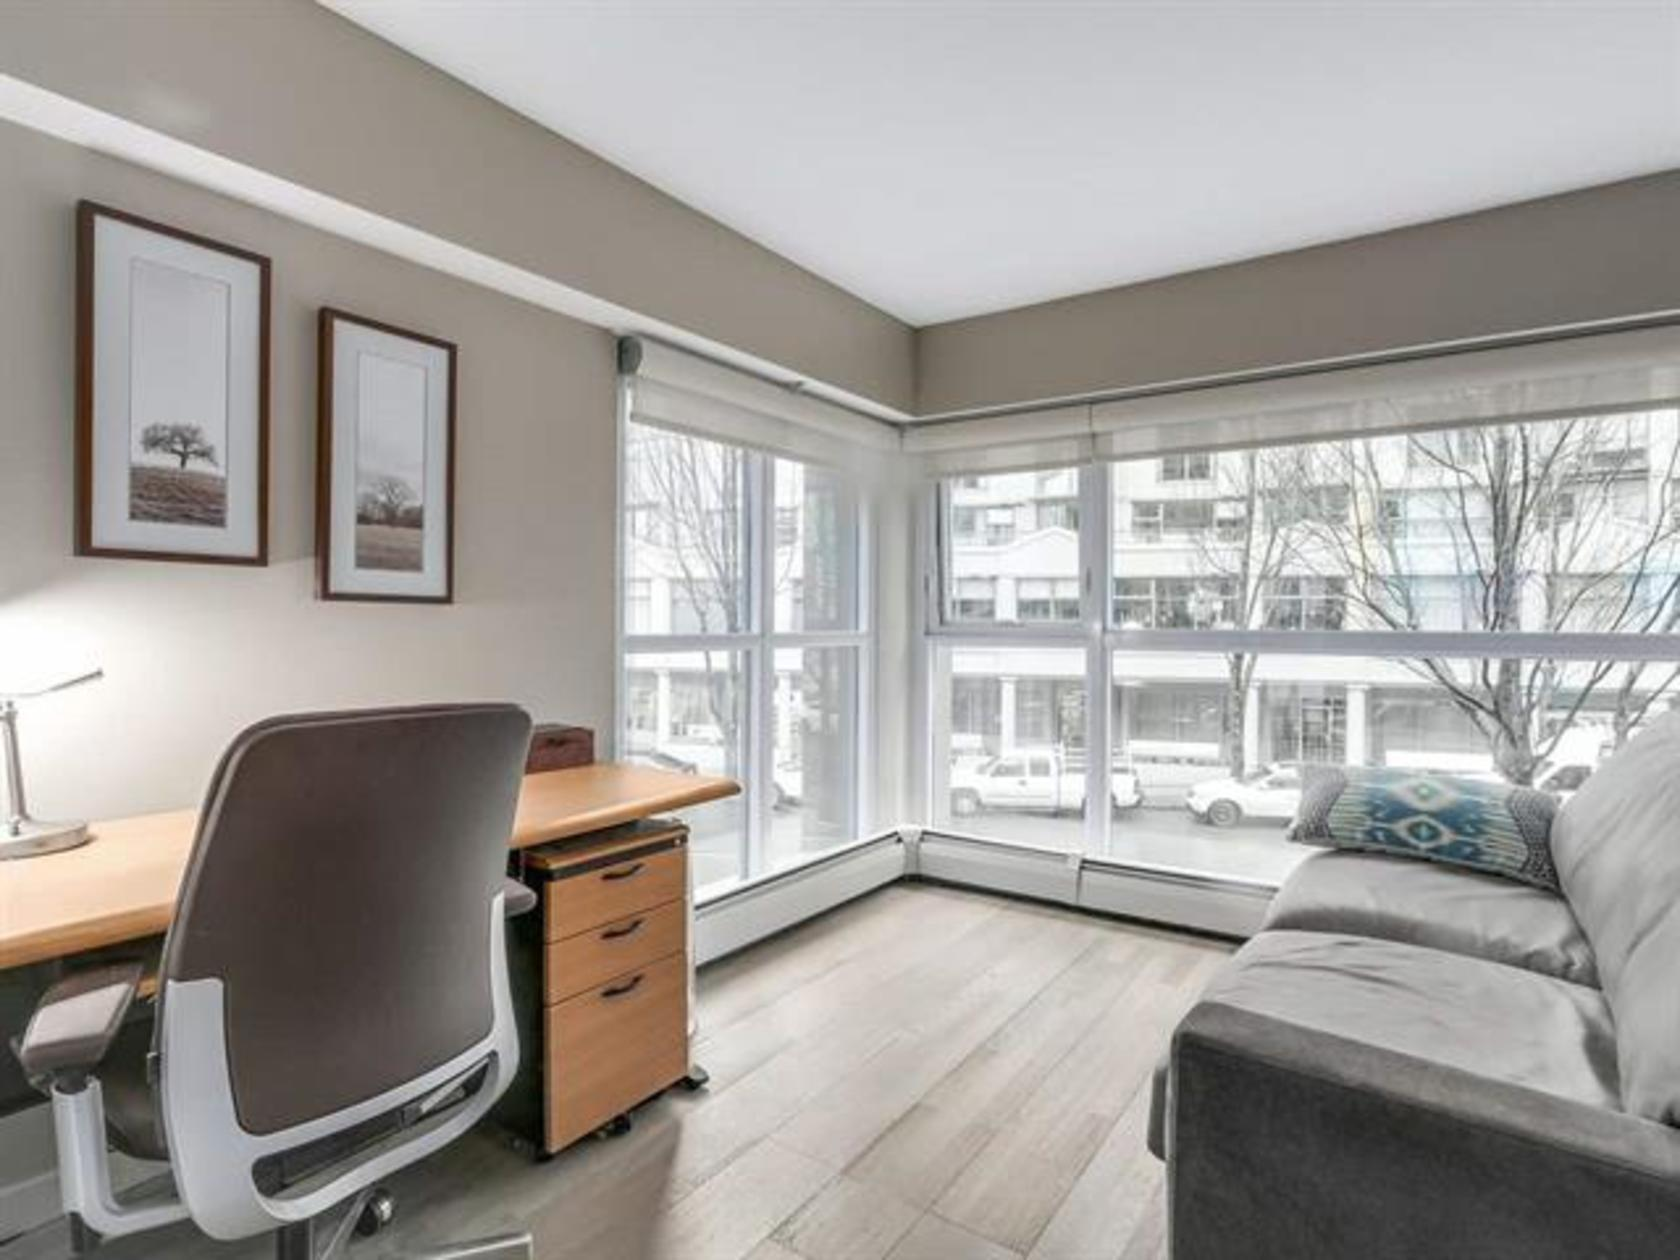 262252492-15 at 202 - 1388 Homer Street, Yaletown, Vancouver West